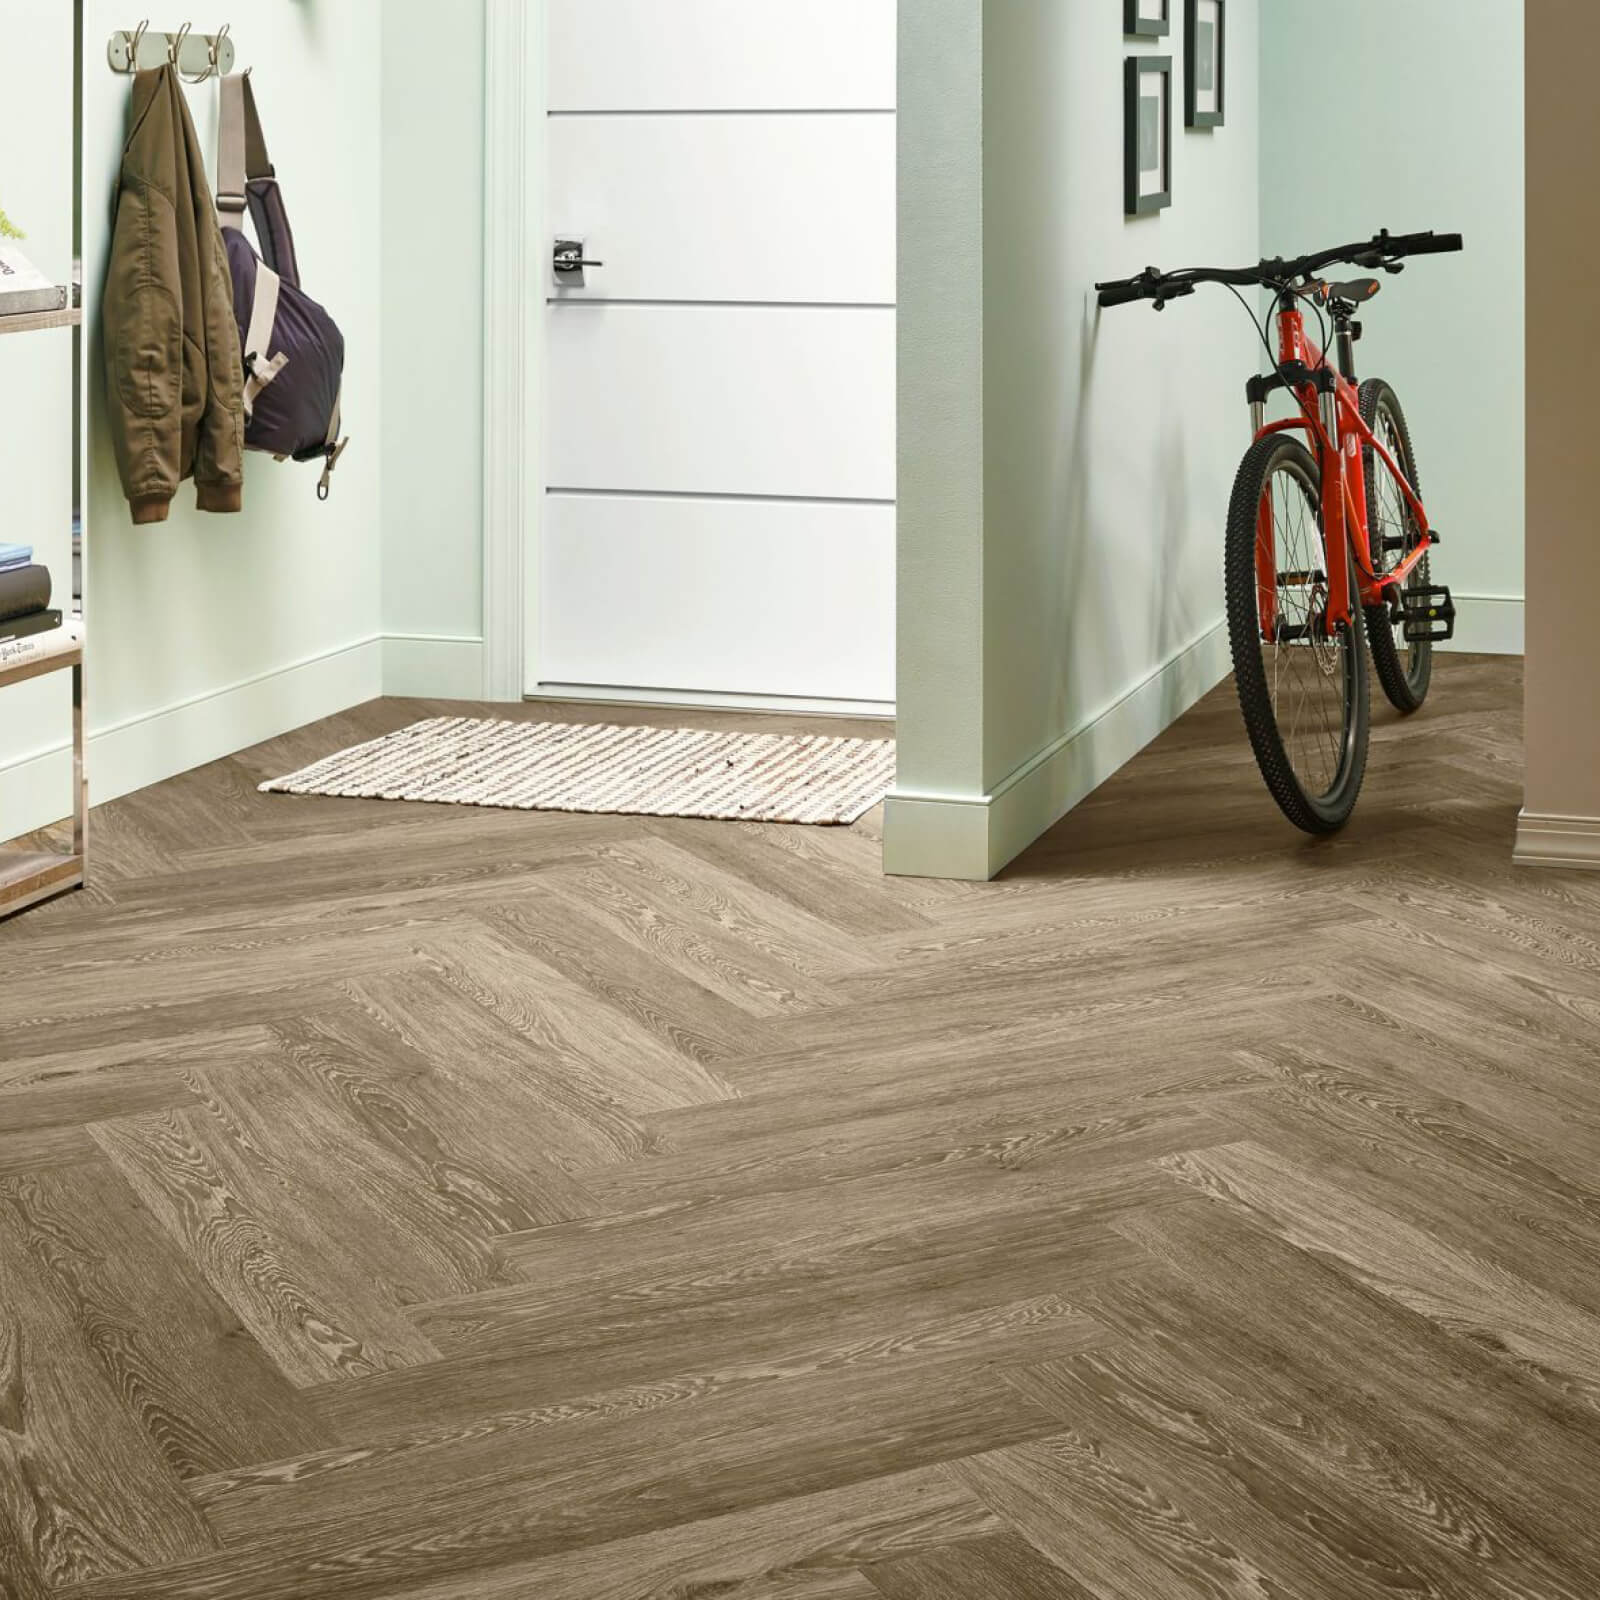 Bicycle on flooring | Webb Carpet